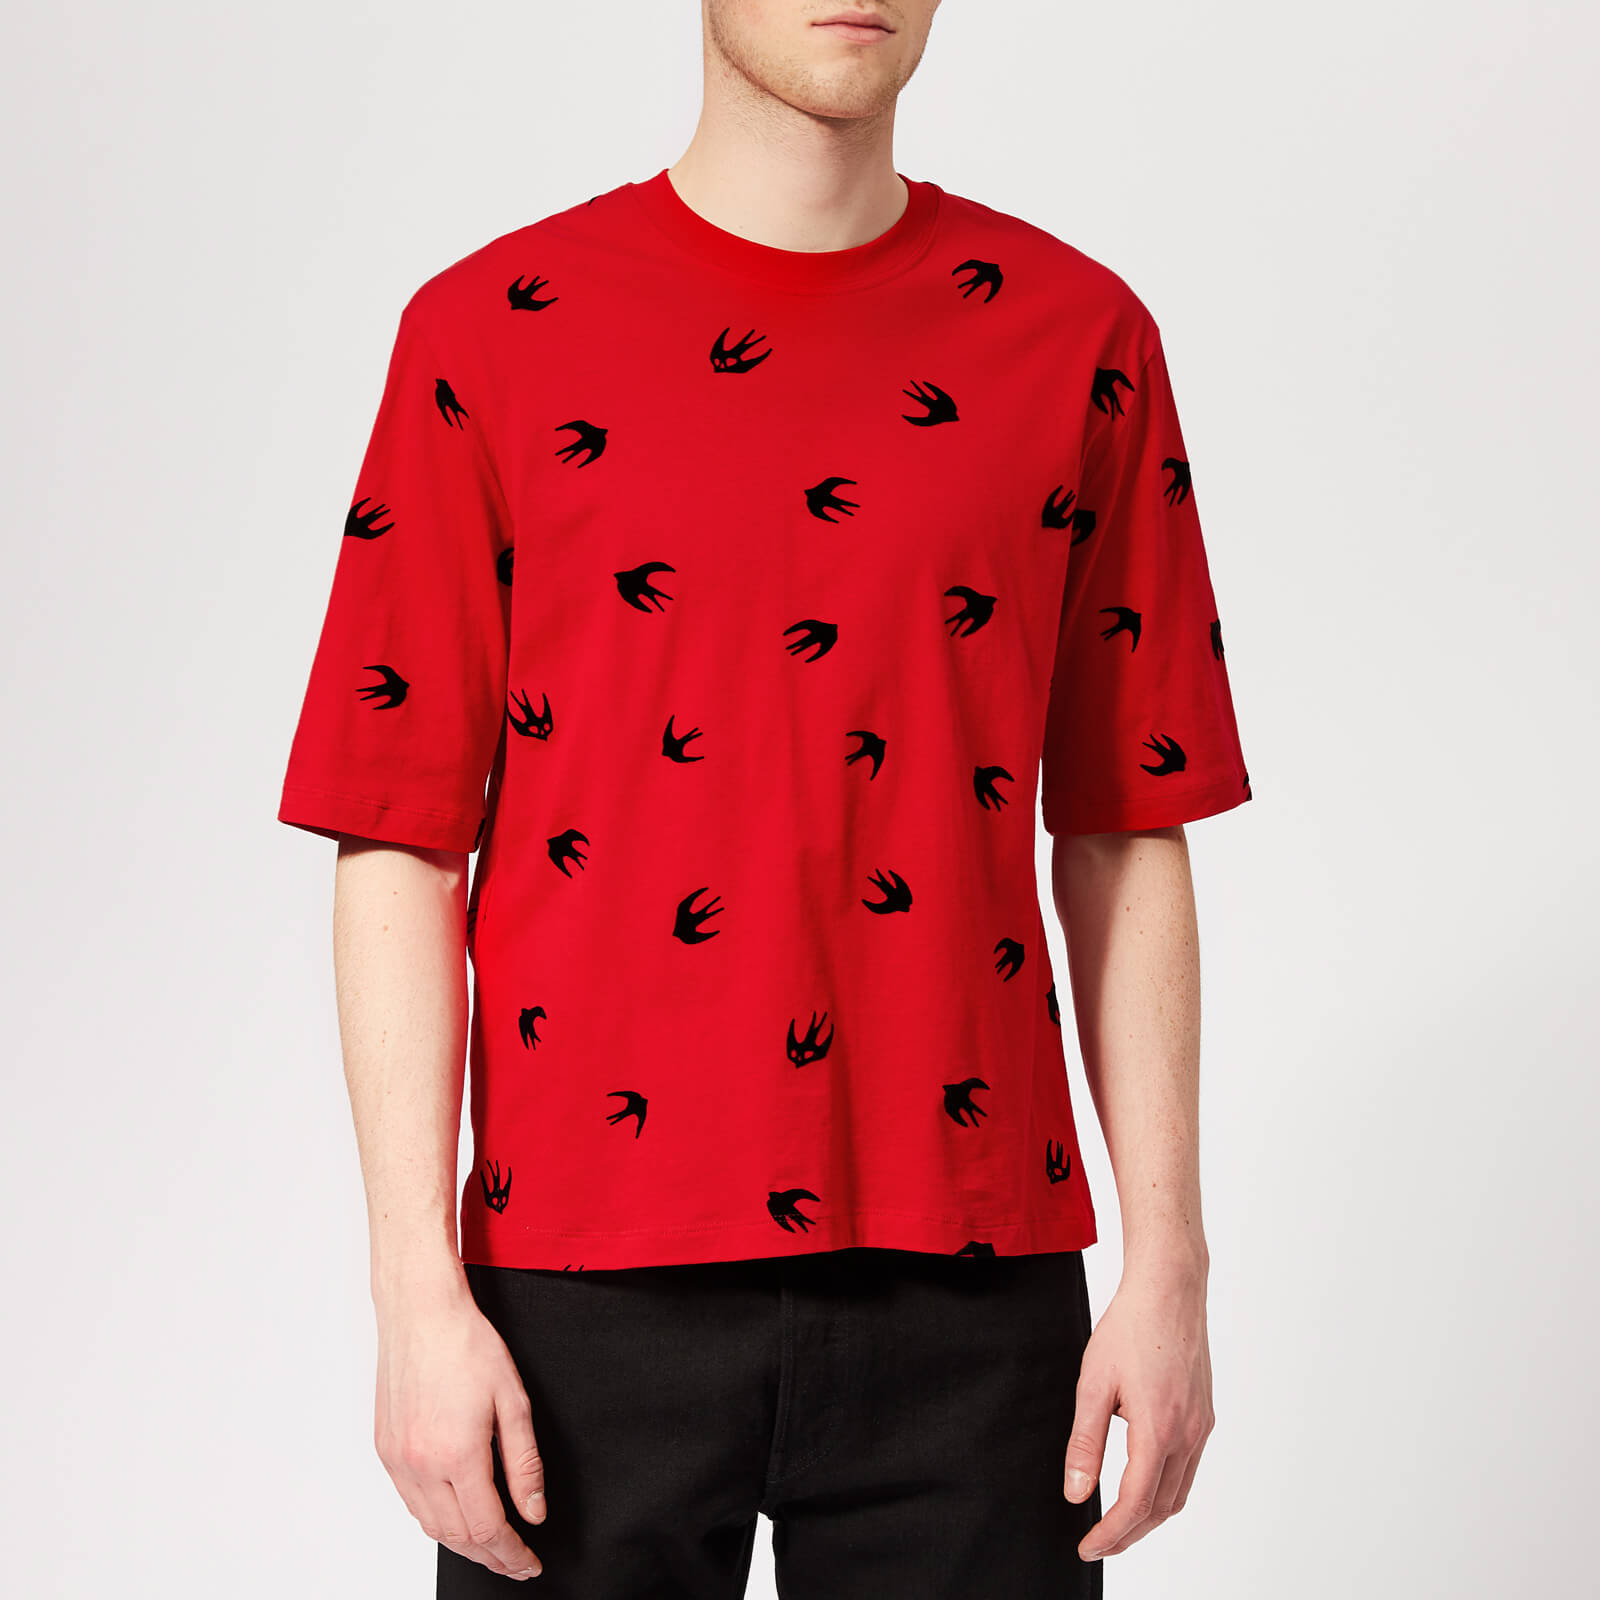 bdbd43a4c McQ Alexander McQueen Men's Mini Swallow T-Shirt - Cadillac Red - Free UK  Delivery over £50